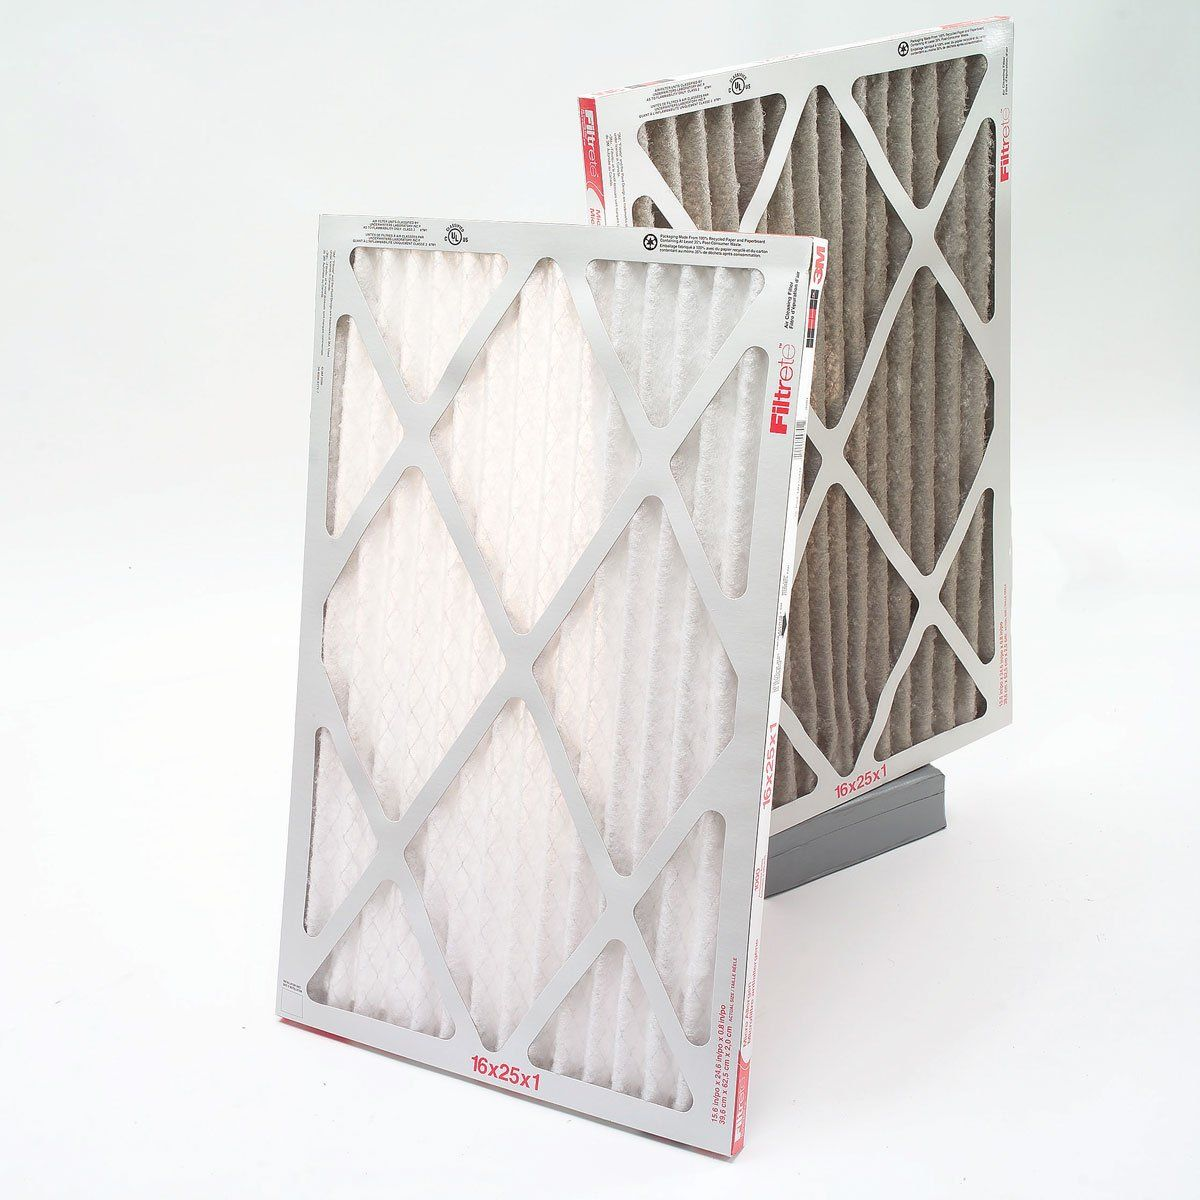 5 Things Everyone Needs To Know About Changing A Furnace Filter Furnace Filters Home Maintenance Cold Room